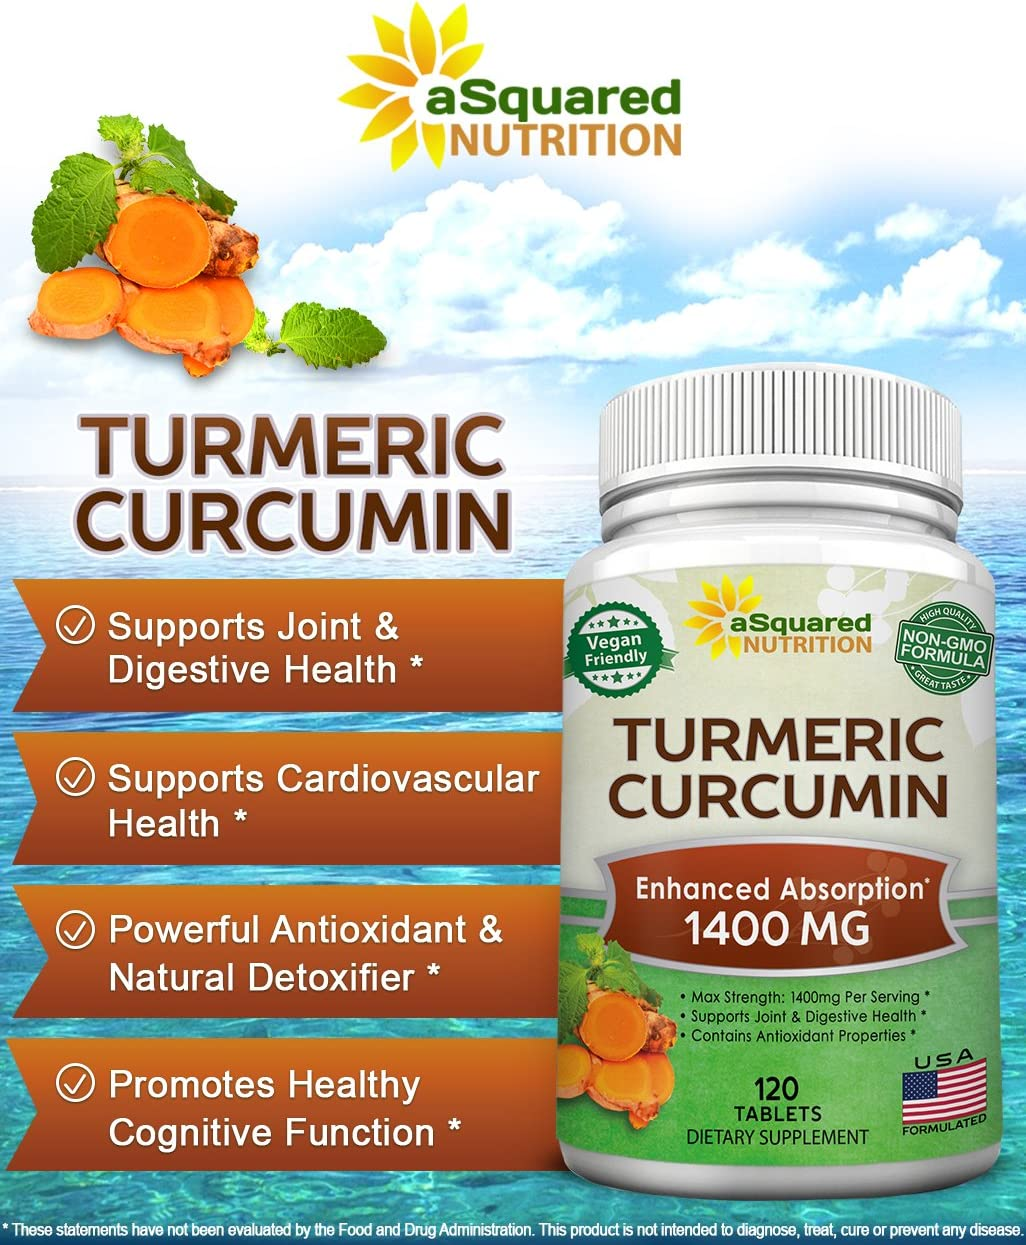 Pure Turmeric Curcumin 1400mg Supplement – 120 Tablets – 100 Natural Tumeric Root Powder Black Pepper Extract Formula, Joint Pain Support Veggie Pills, Anti-Inflammatory Antioxidant